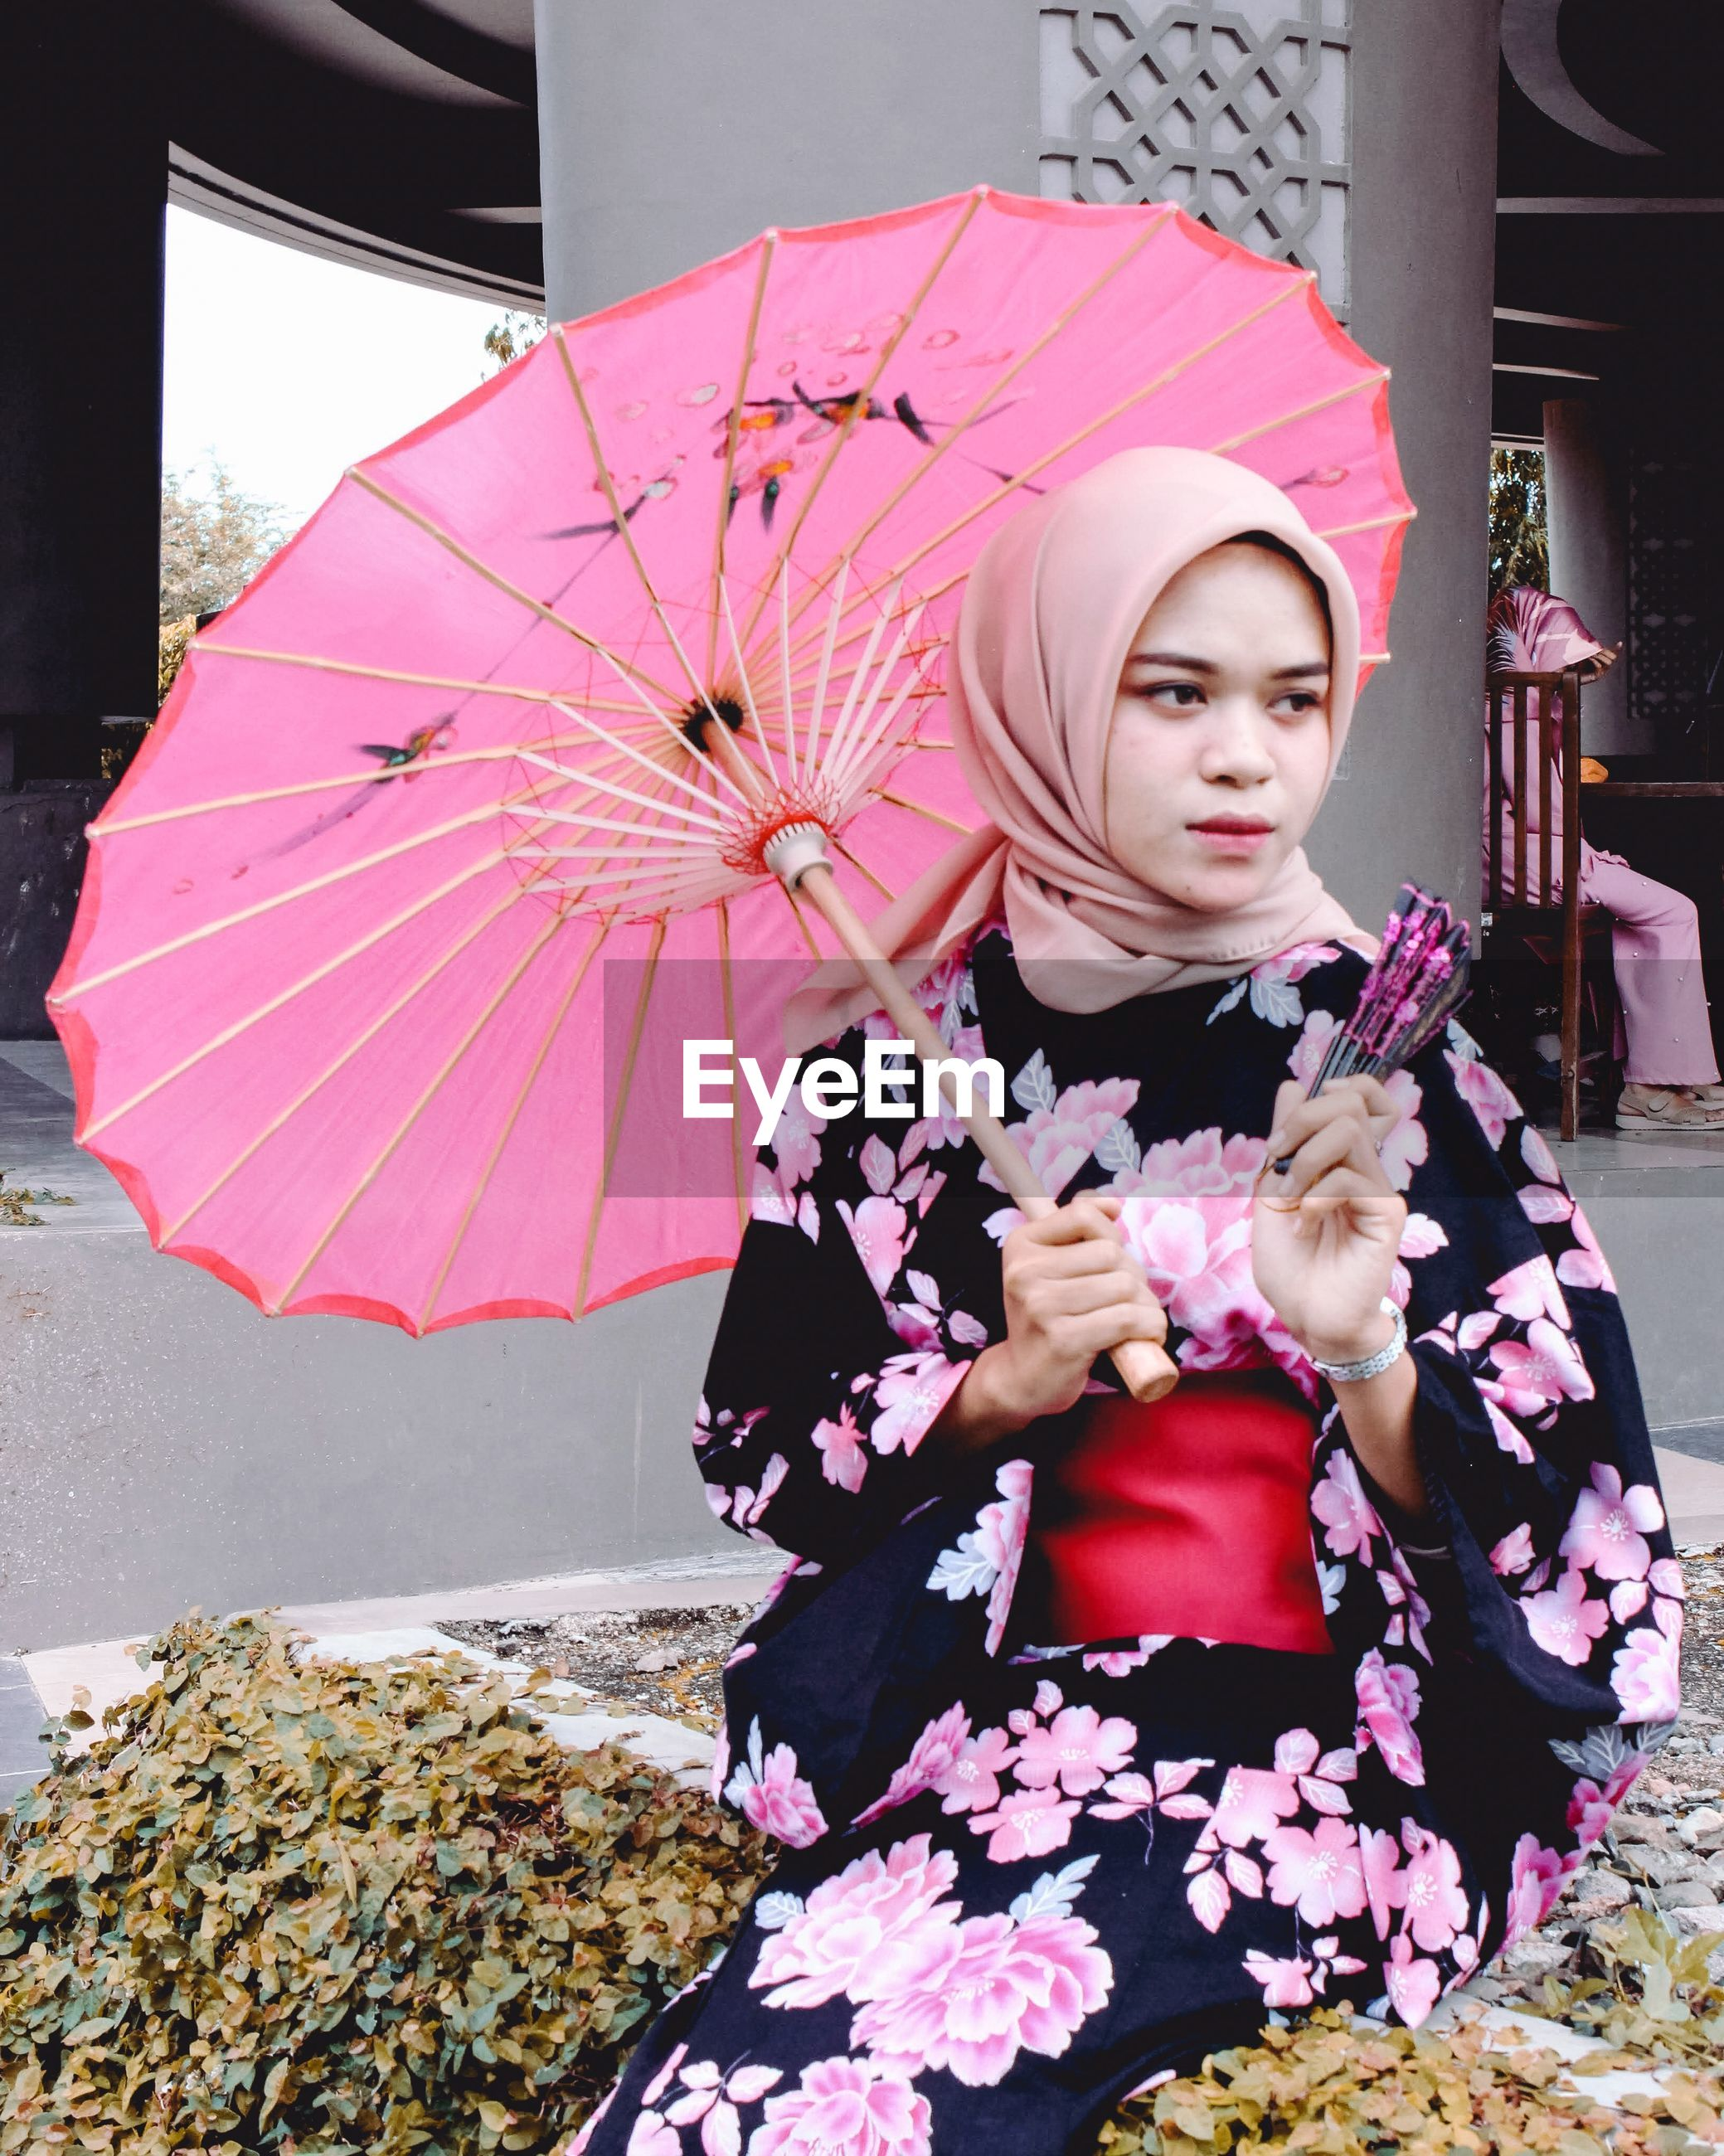 Woman holding pink umbrella and hand fan while sitting outdoors